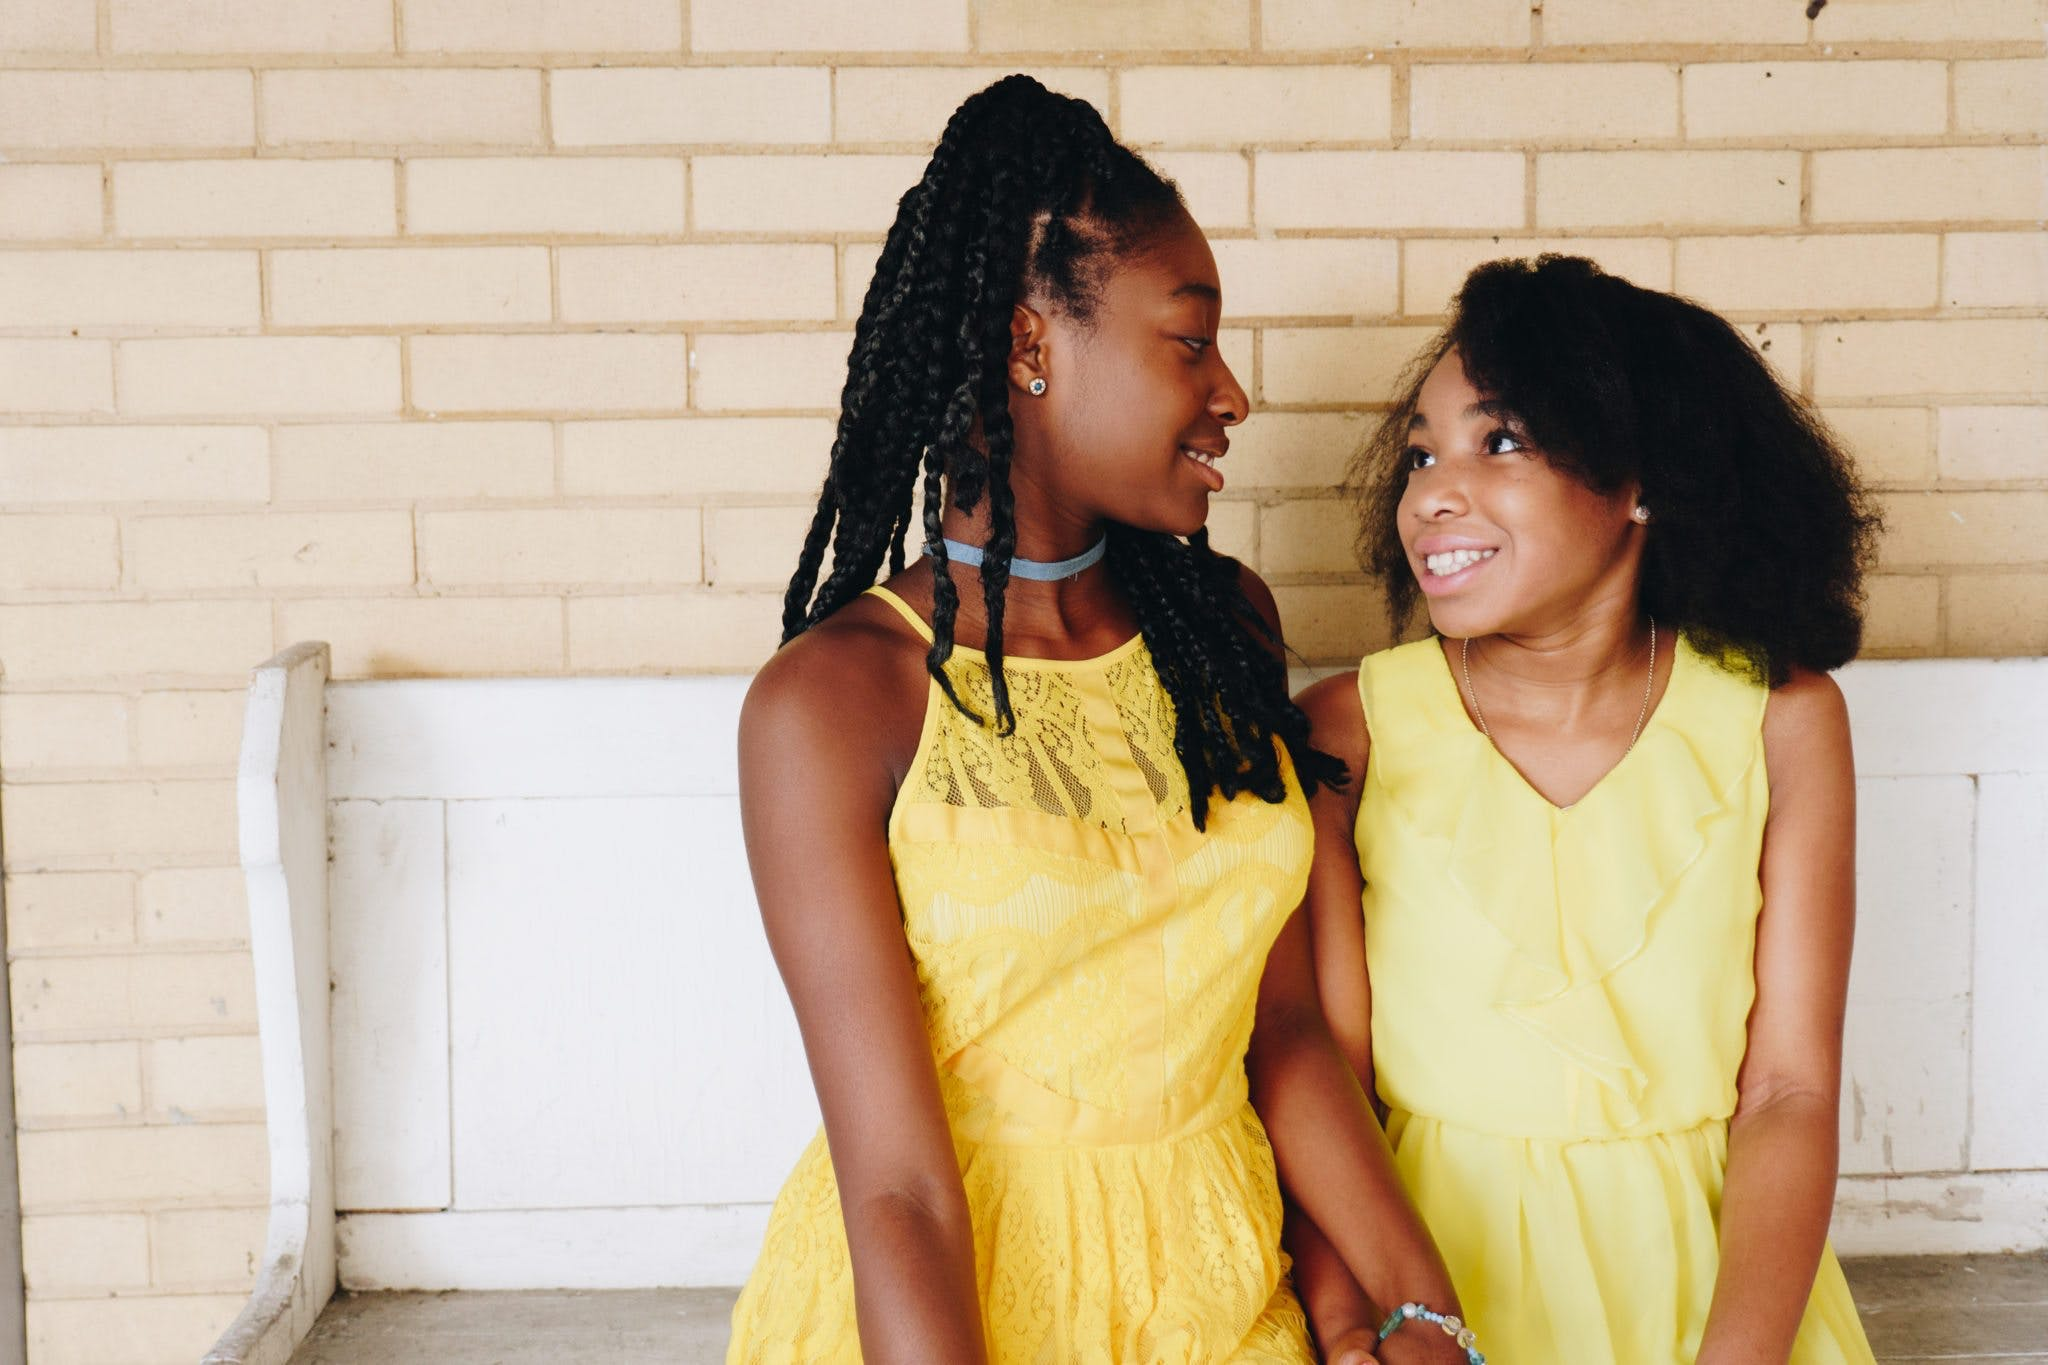 Two Girls Wearing Yellow Sleeveless Dresses